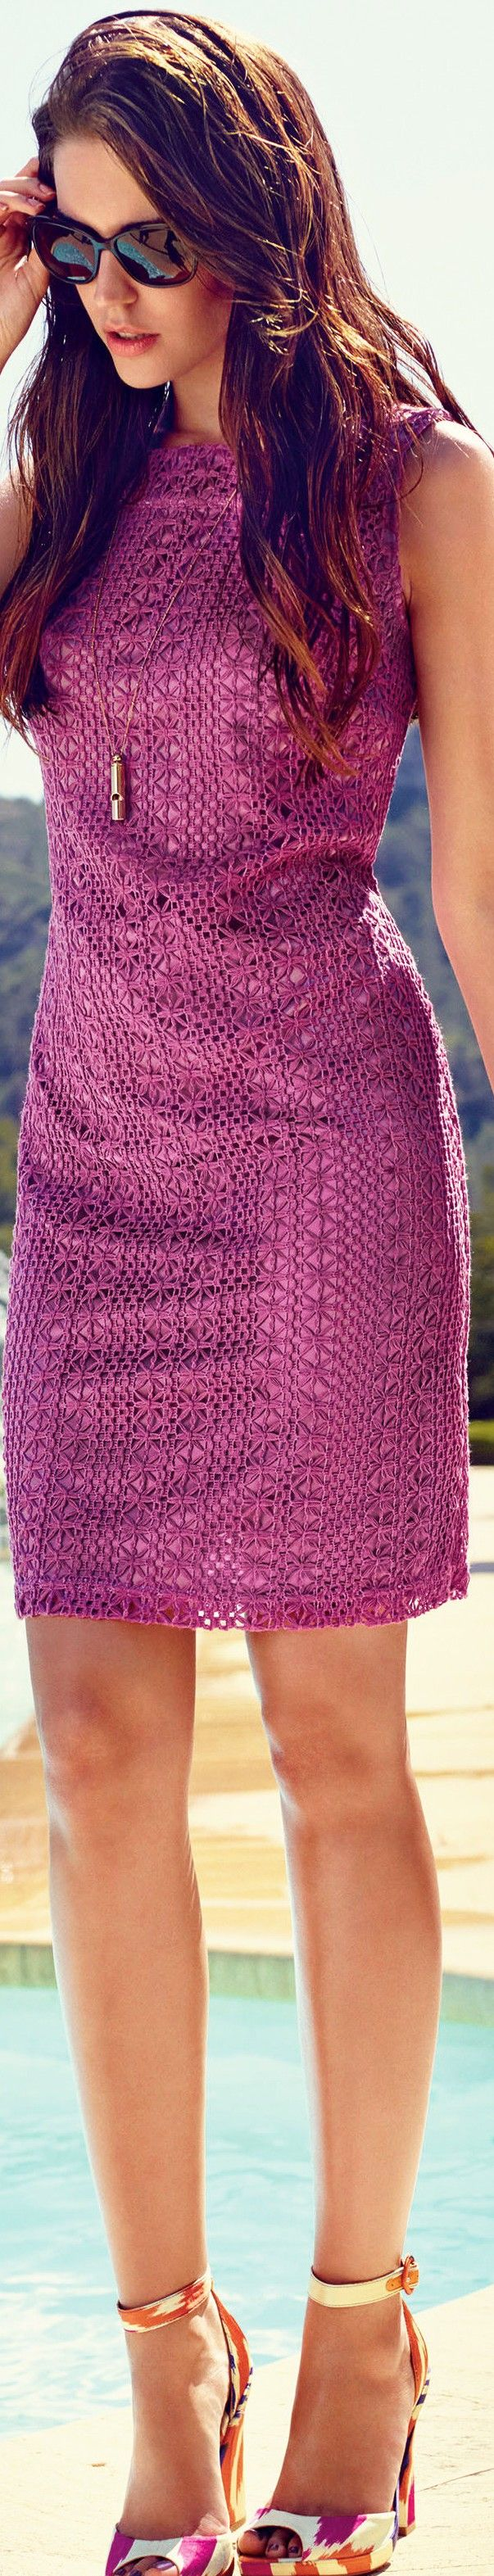 Example of Pantone Radiant Orchid for Spring and Fall 2014 fashion - article